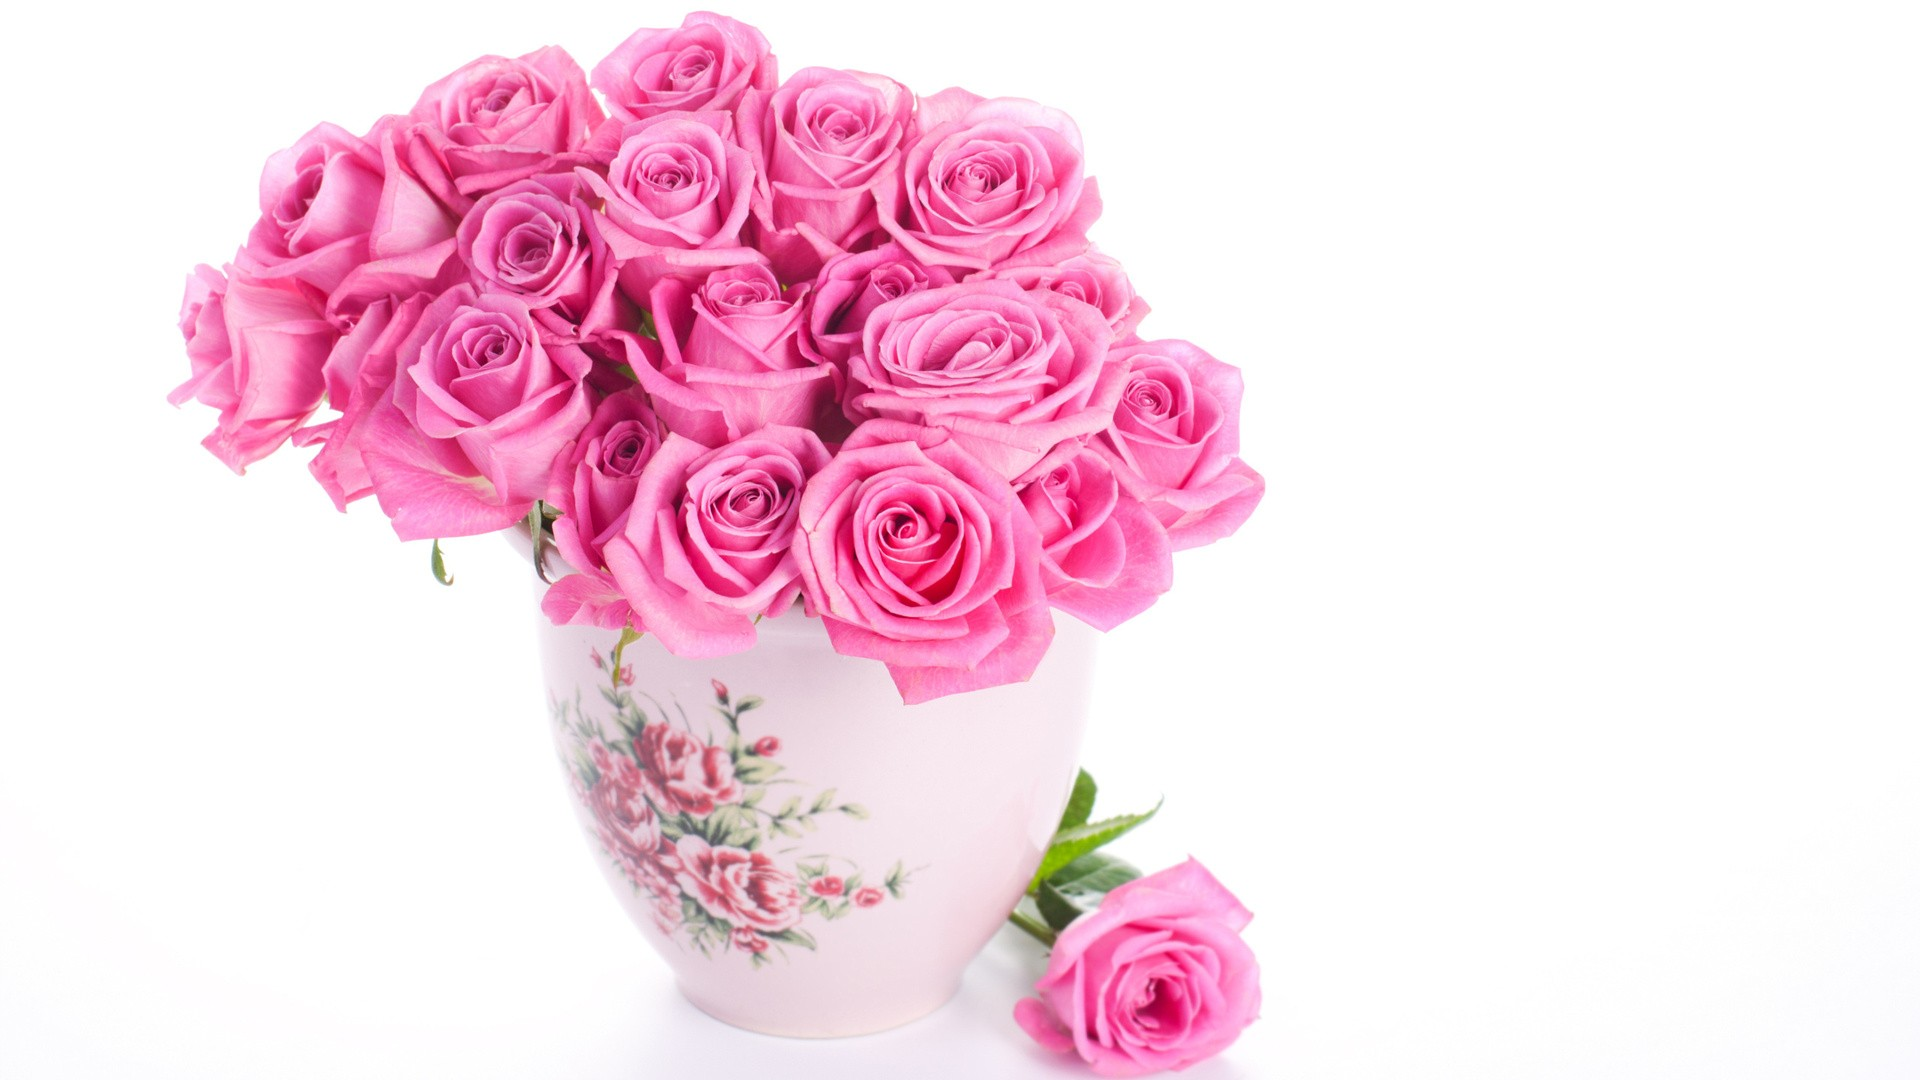 Women's Day Roses wallpaper download